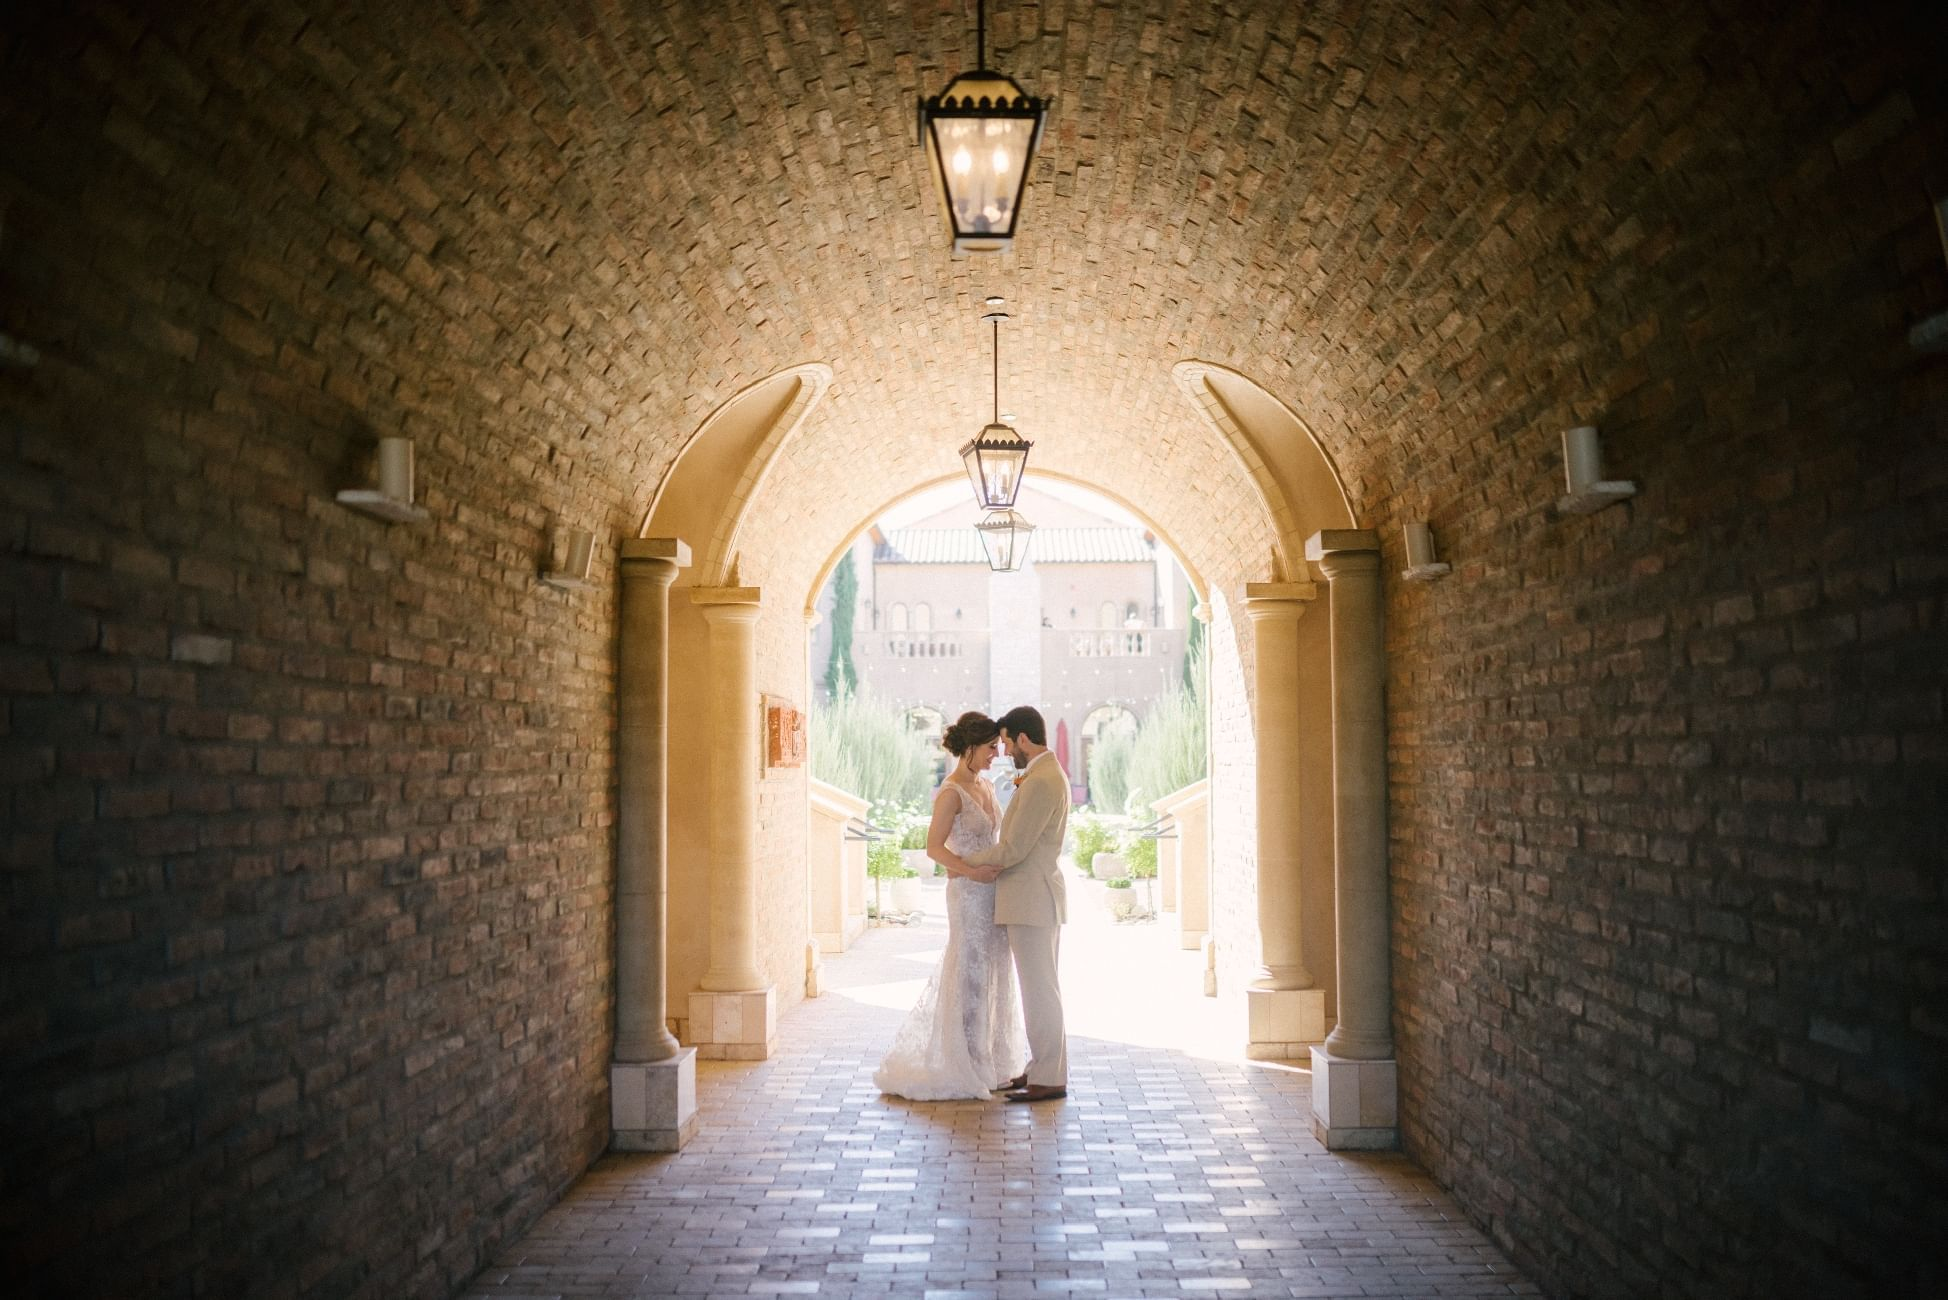 Bride and groom stand face to face under a stone archway